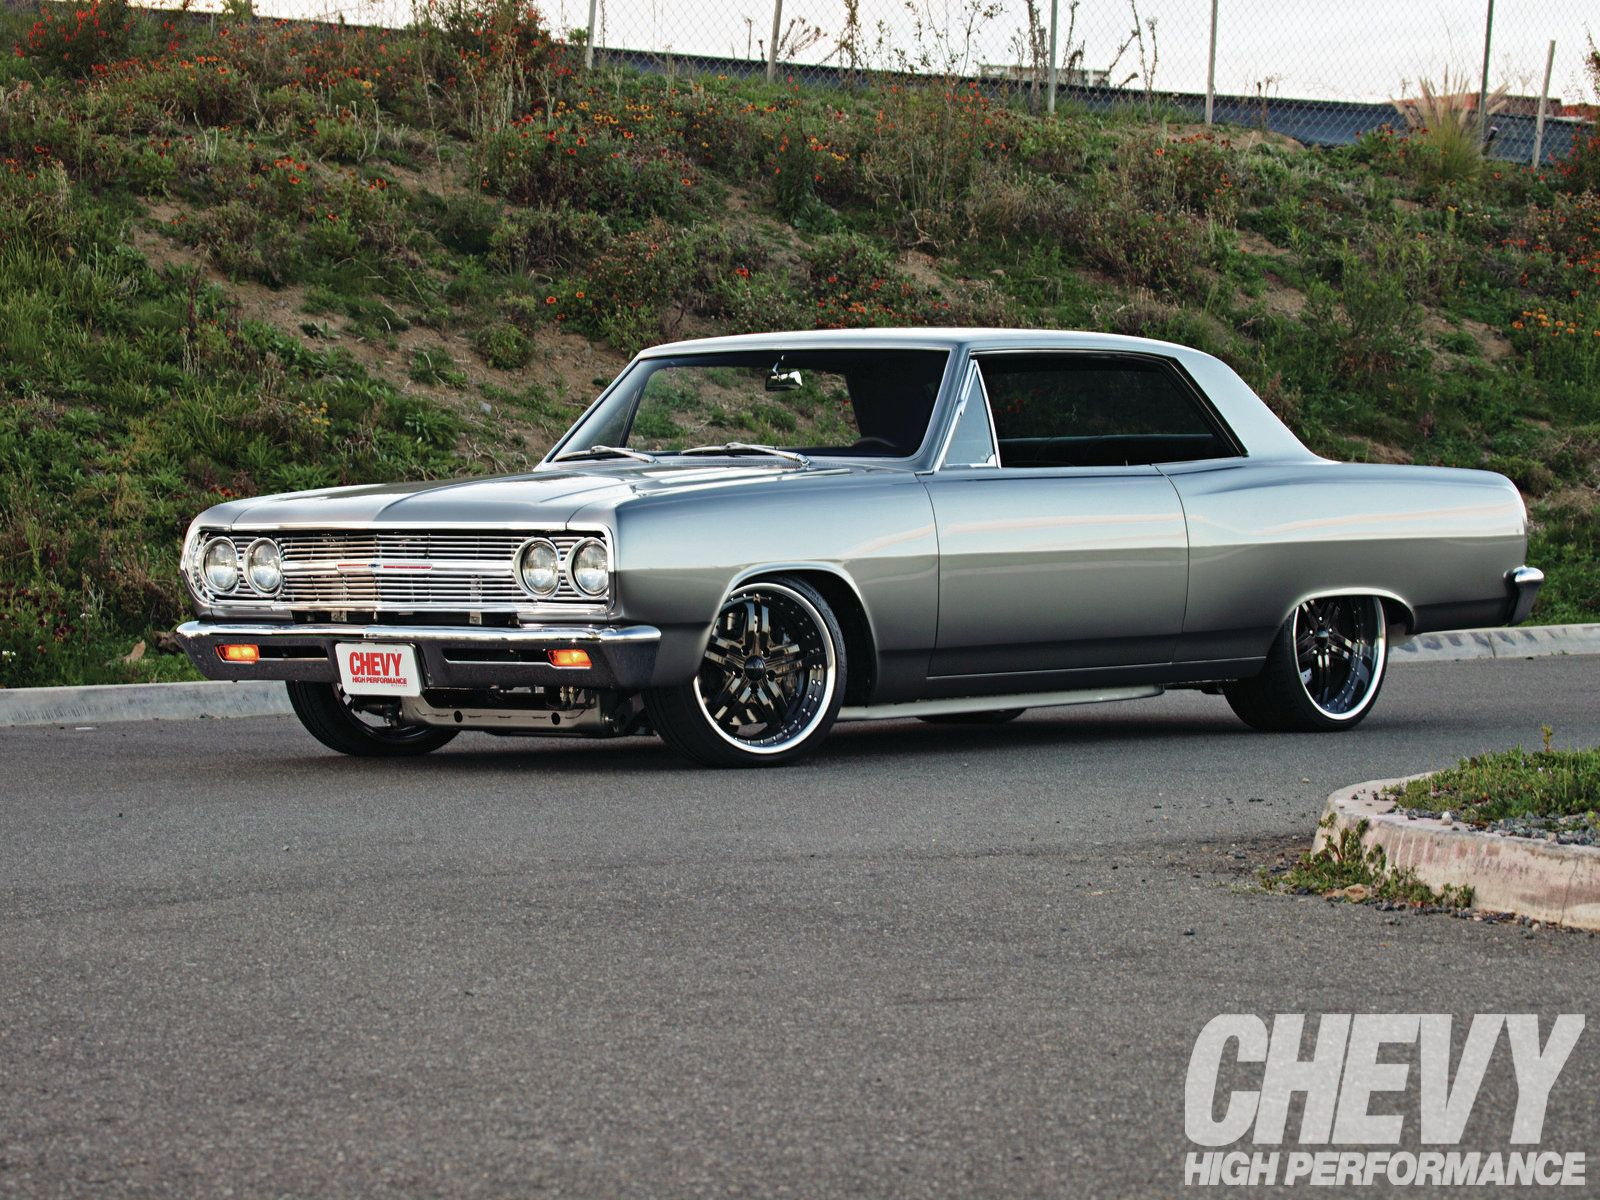 Chevelle 1965 Chevrolet Chevelle Side Chevrolet Chevelle Chevrolet Wallpaper Classic Cars Muscle